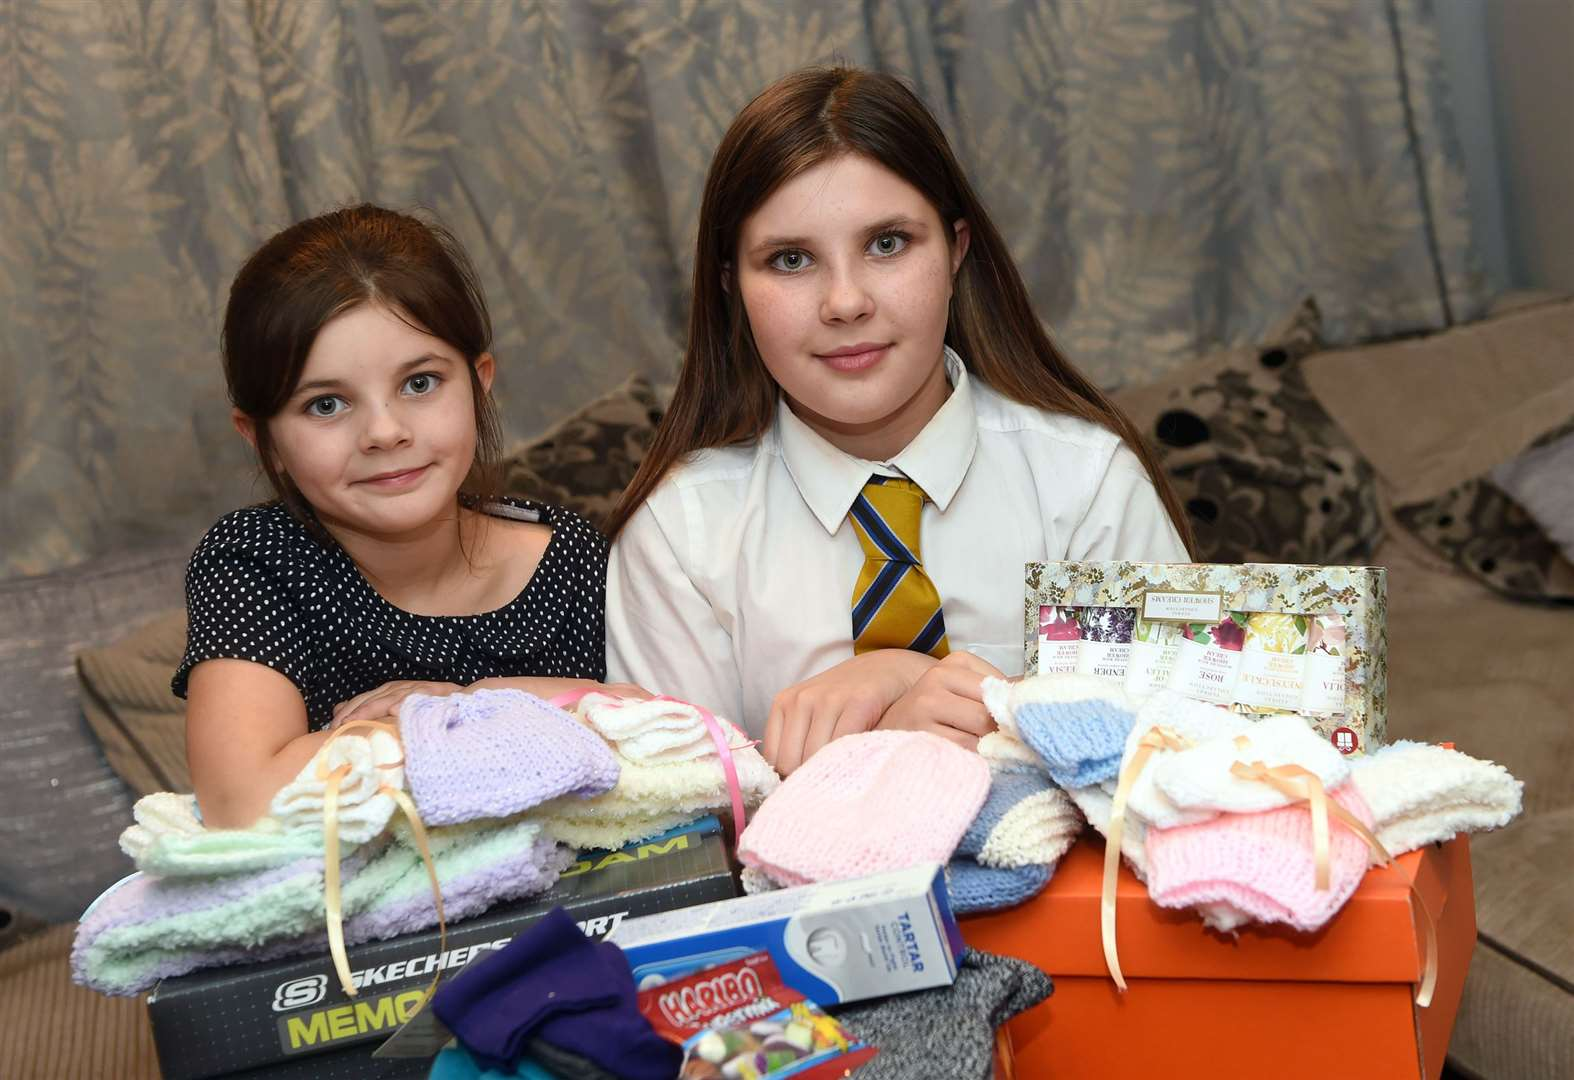 Streetwise pair collect for homeless